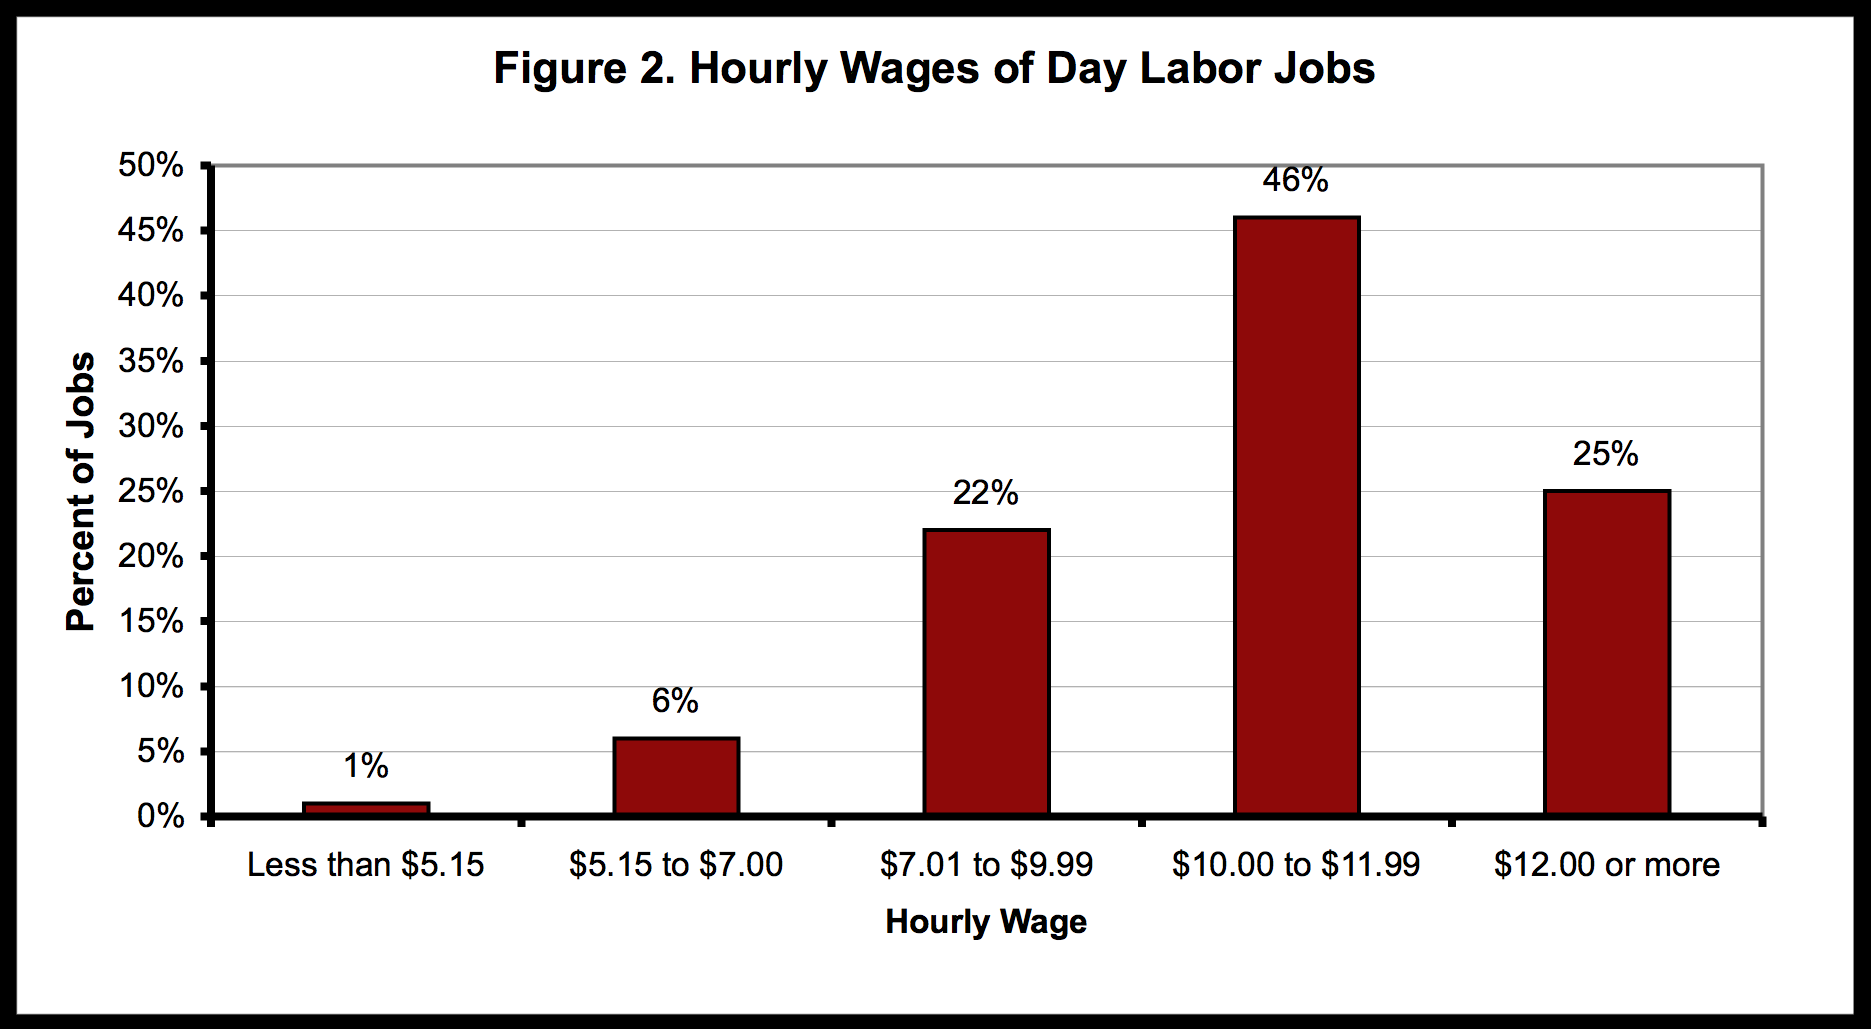 Source: National Day Labor Survey, 2004.